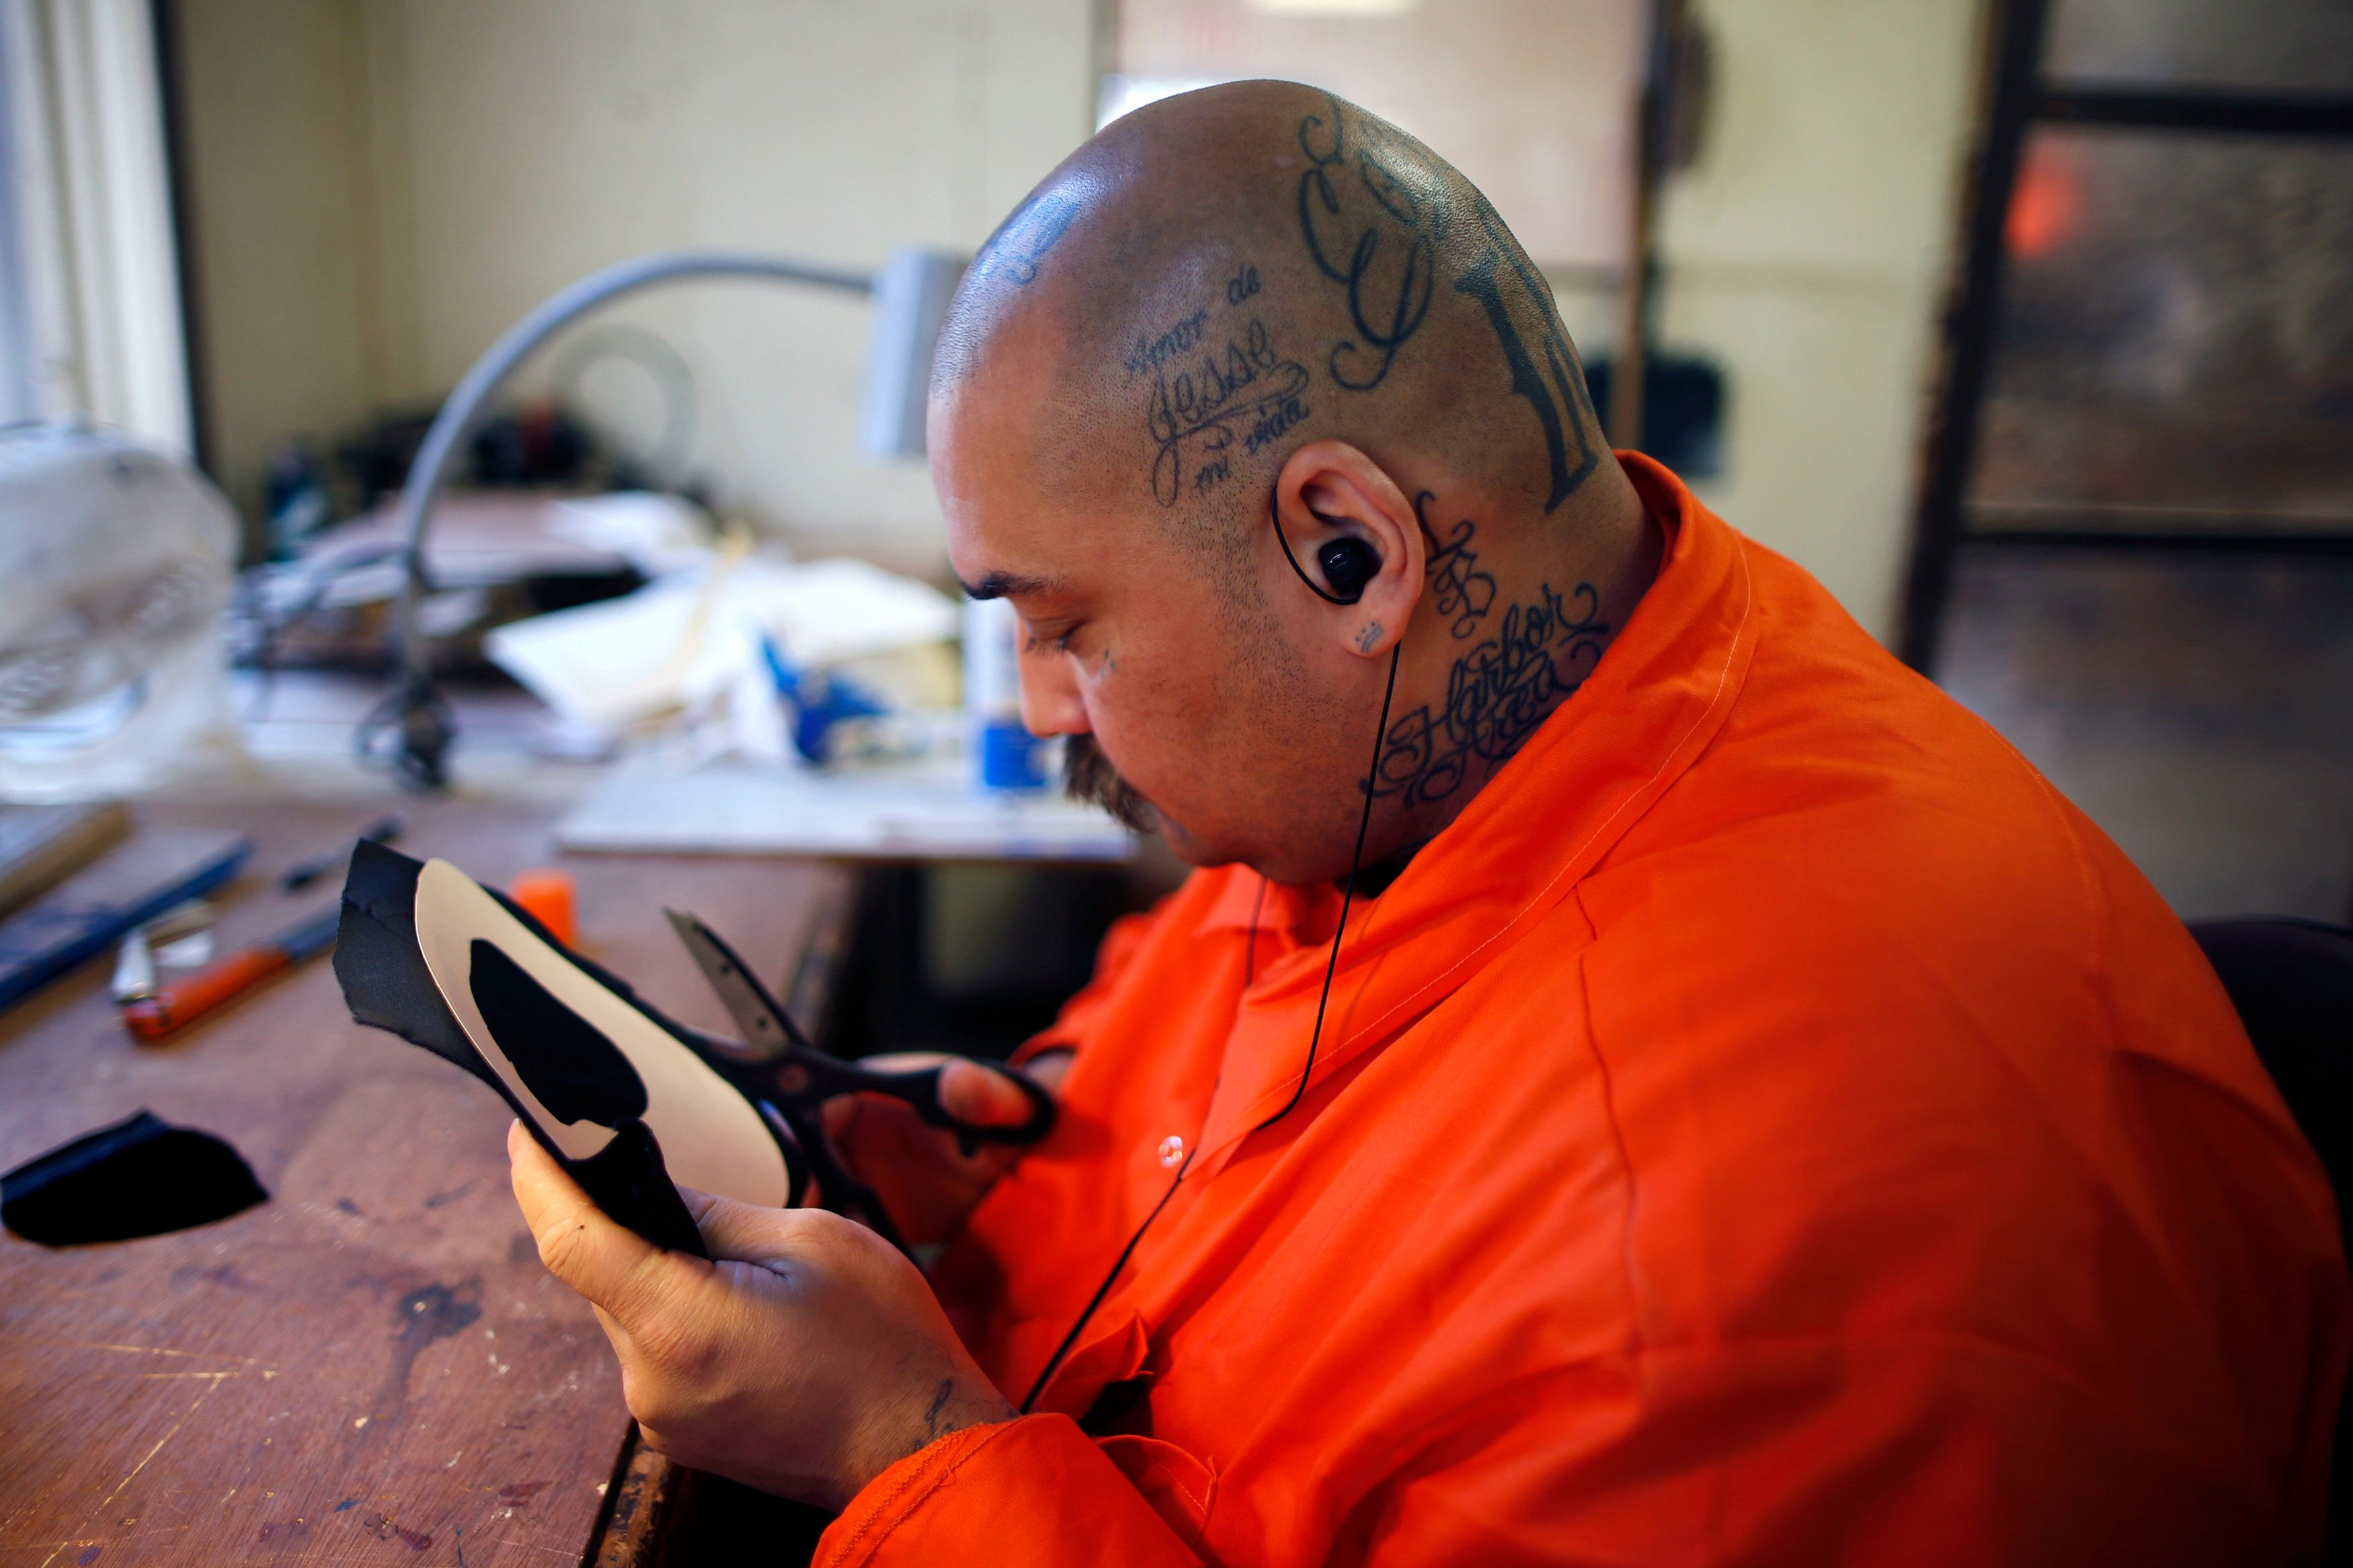 A prison inmate cuts out a heart to line a wooden jewelry box he made at Oak Glen Conservation Fire Camp #35 in Yucaipa, California November 6, 2014. Thousands of convicted felons form the backbone of California's wildfire protection force under a unique and little-known prison labor program. But California may soon find it harder to recruit new inmate firefighters after a ballot measure was passed last month to ease prison crowding by reducing felony sentences to misdemeanor jail terms for most non-violent, low-level offenses, including many drug crimes. That measure will likely diminish the very segment of the inmate population that the California Department of Forestry and Fire Protection, or Cal Fire, draws upon to fill its wildland firefighting crews. Picture taken November 6. To match Feature USA-FIREFIGHTERS/CALIFORNIA      REUTERS/Lucy Nicholson   (UNITED STATES - Tags: CRIME LAW SOCIETY)